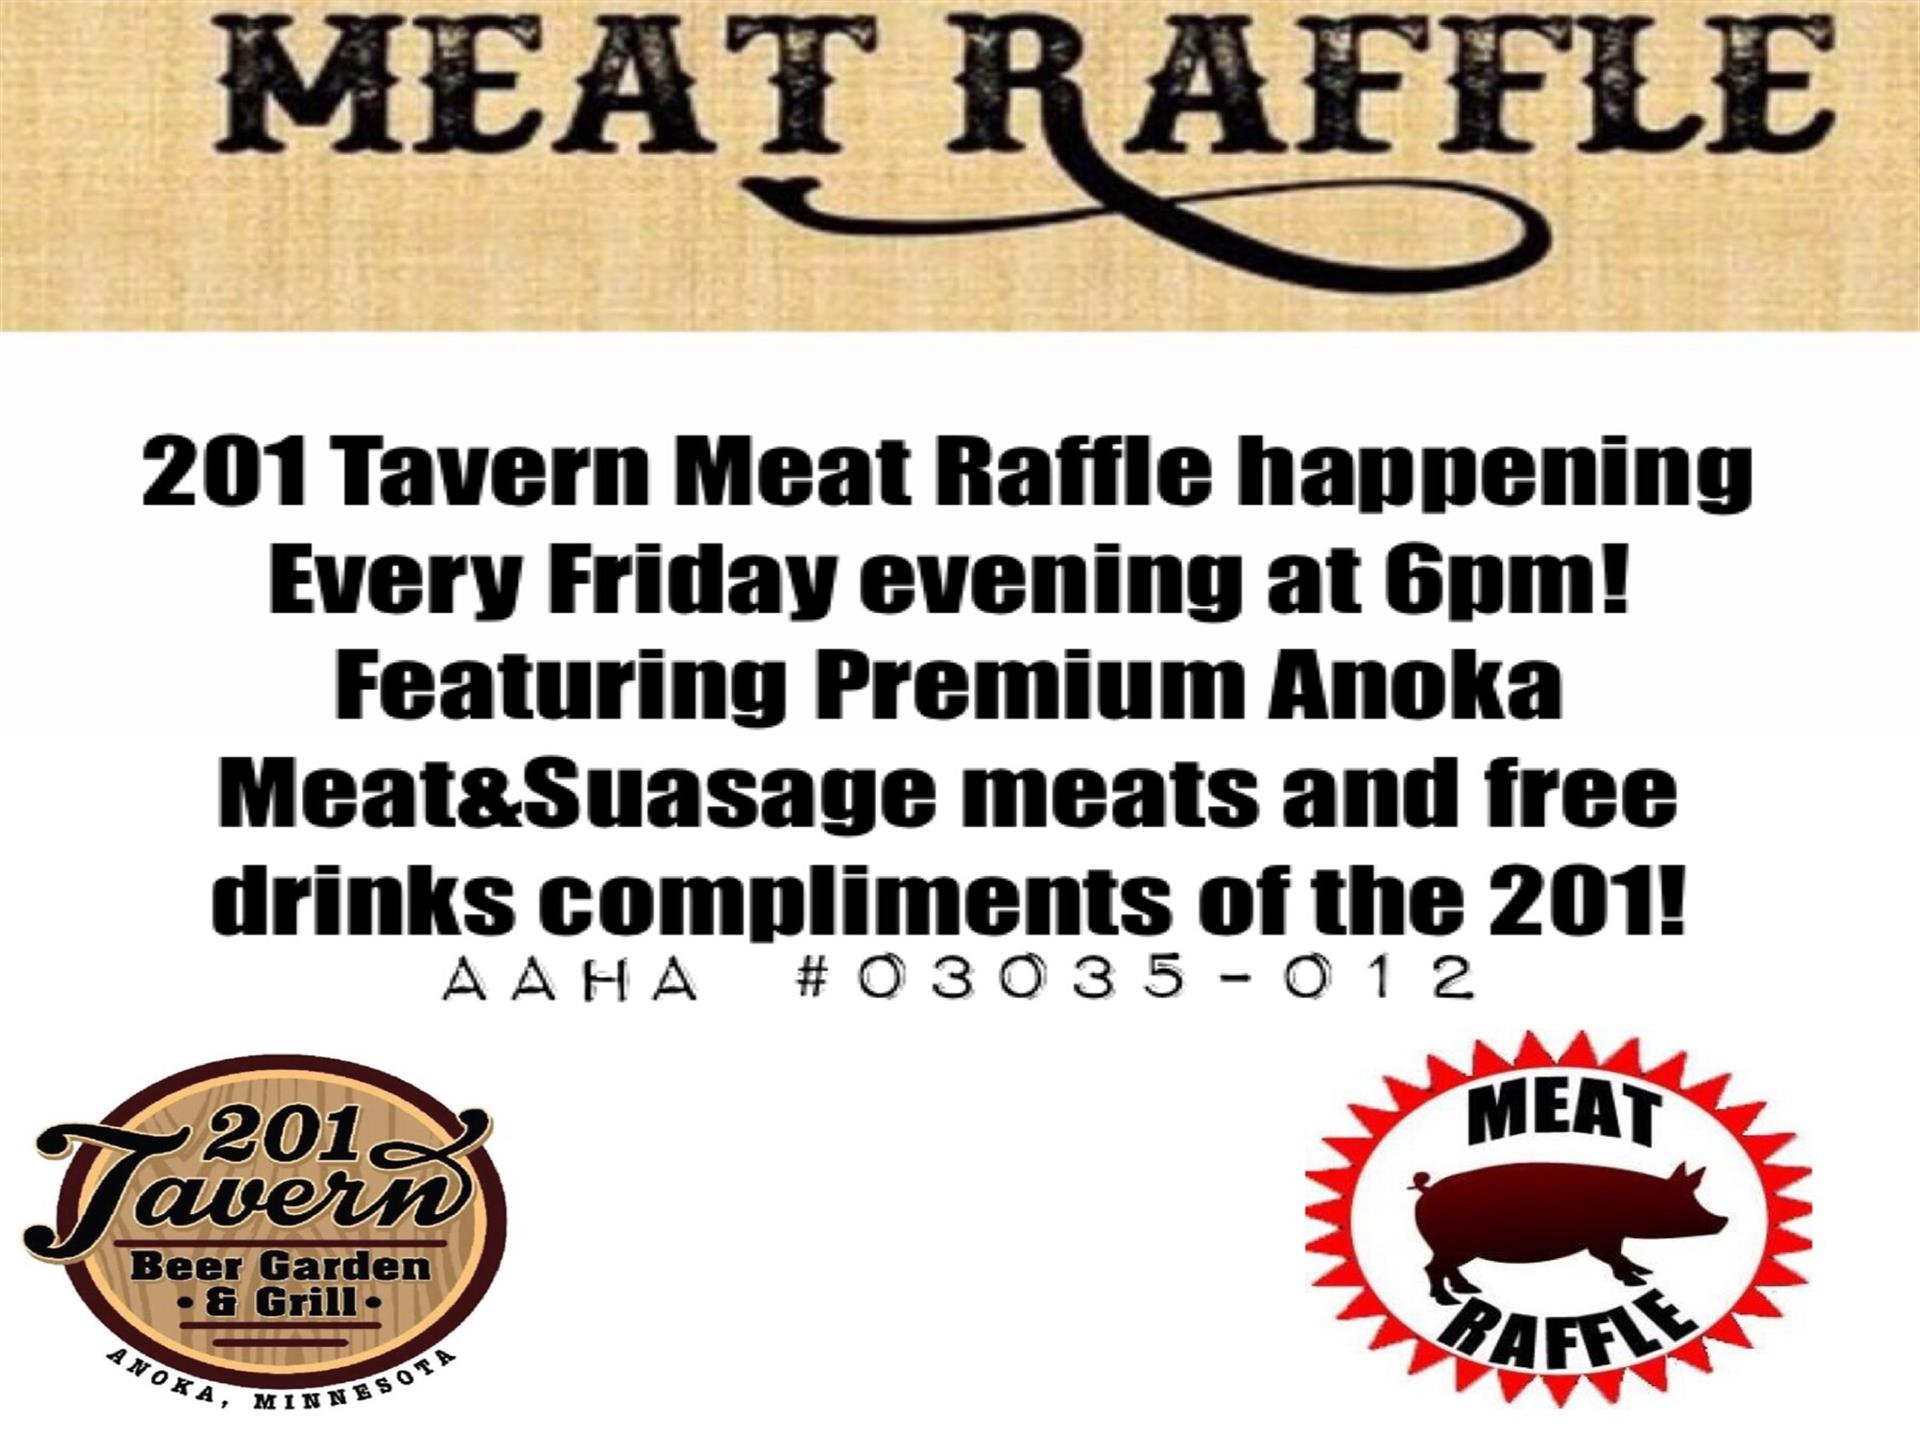 Meat Raffle. 201 Tavern Meat Raffle happening every friday evening at 6pm! Featuring premium Anoka Meat and Sausage meats and free drinks compliments of the 201!